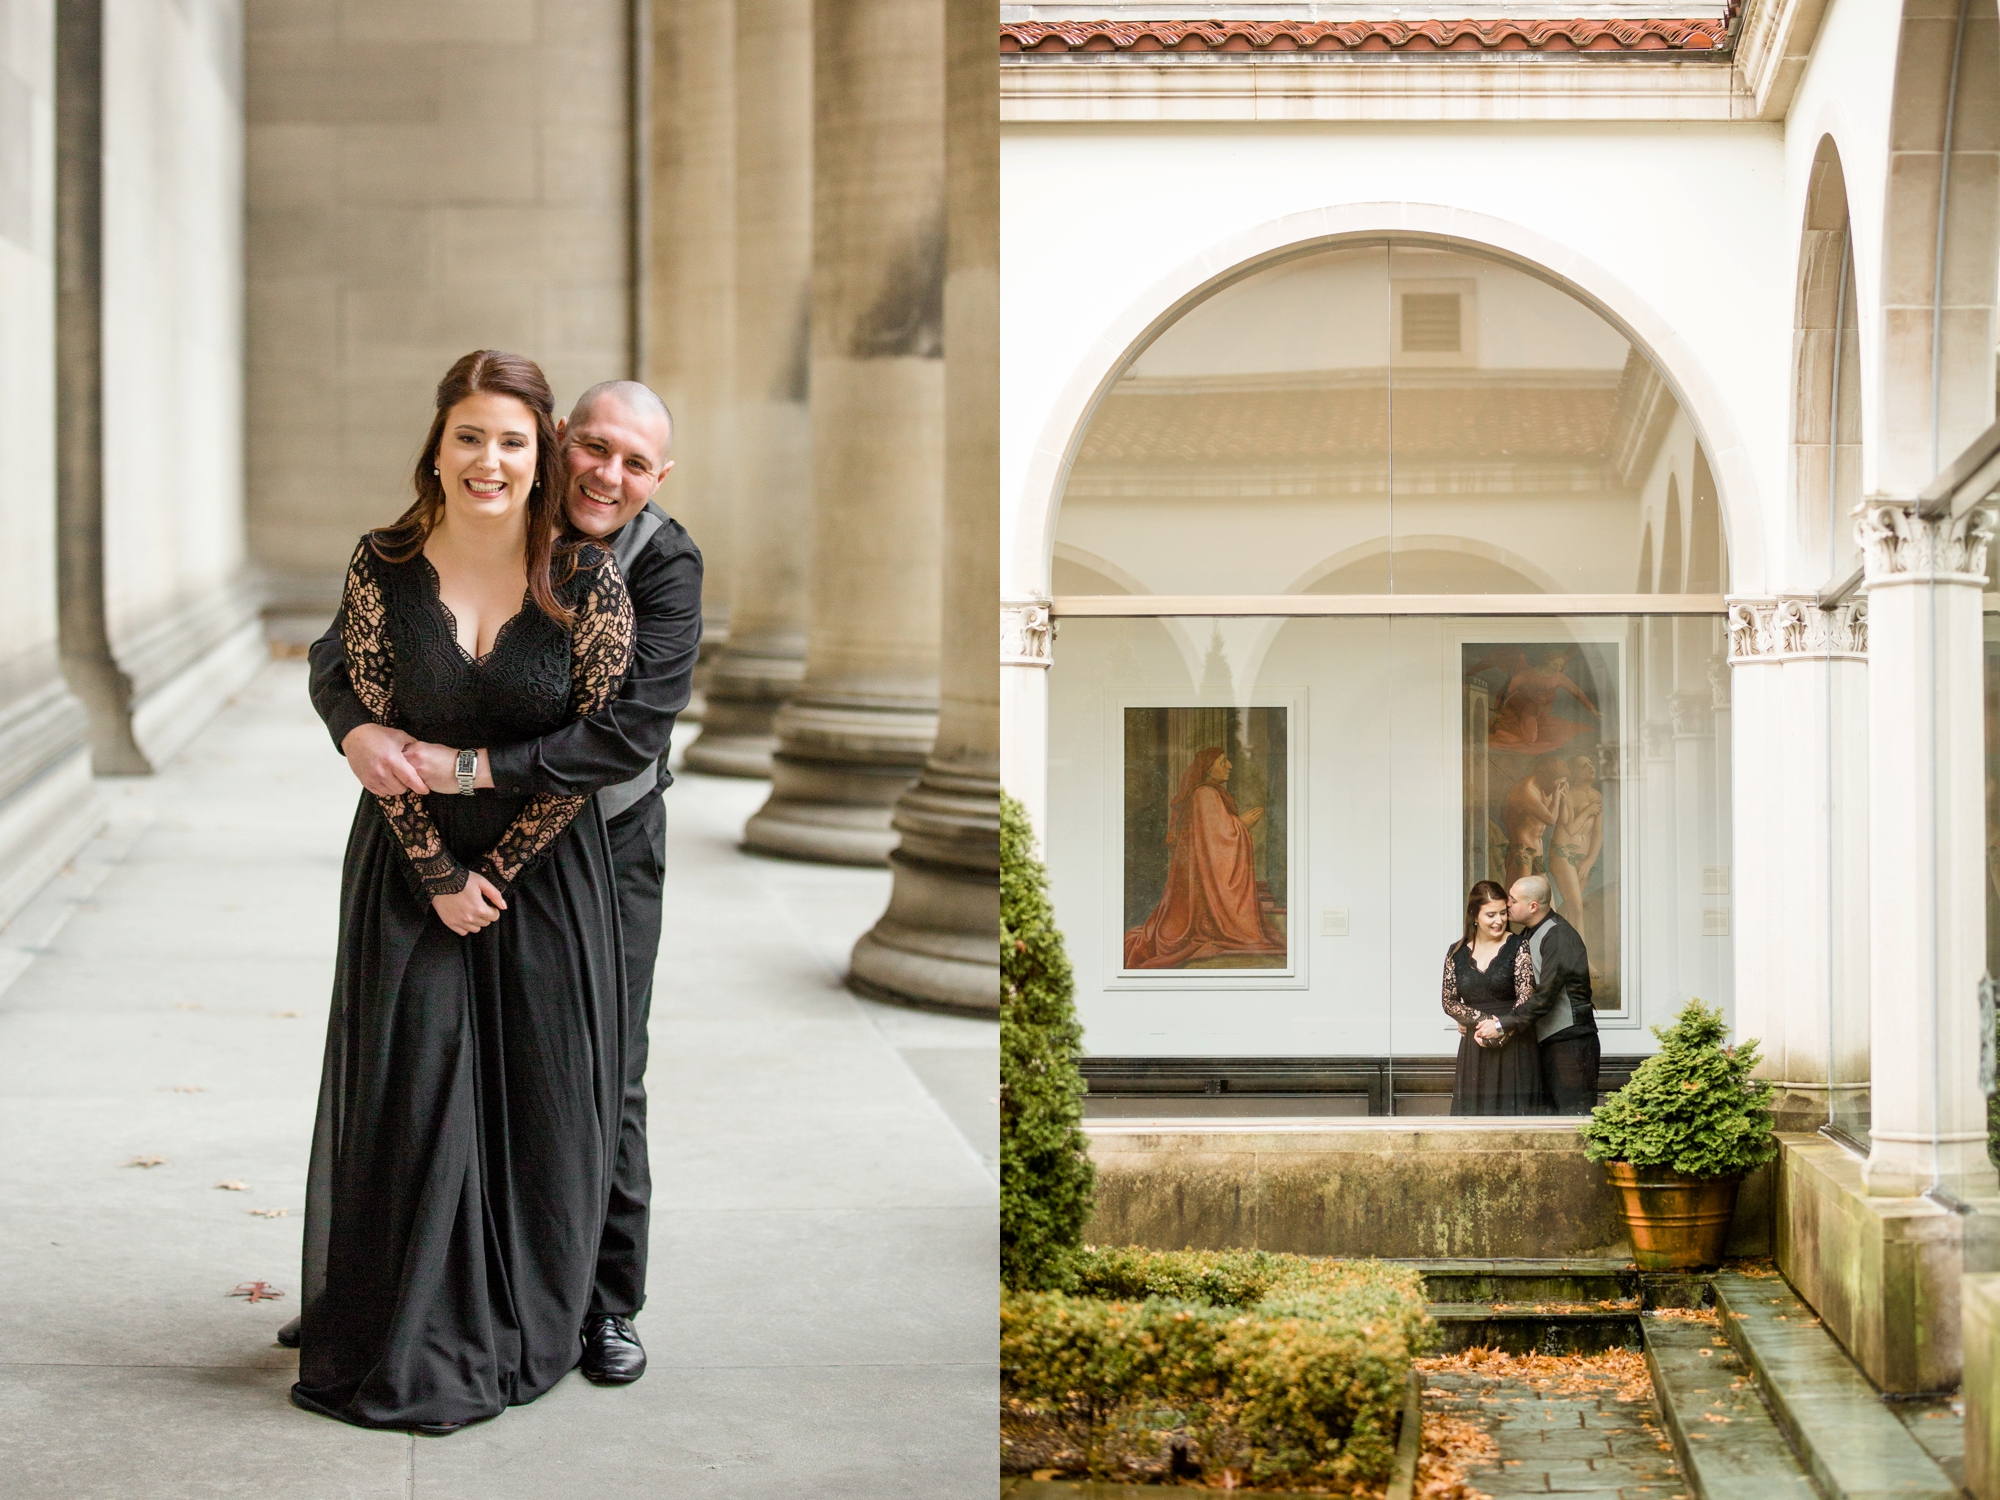 pittsburgh wedding photographer, pittsburgh engagement photos, best spot in pittsburgh for photo shoot, mellon institute wedding photos, university of pittsburgh wedding photos